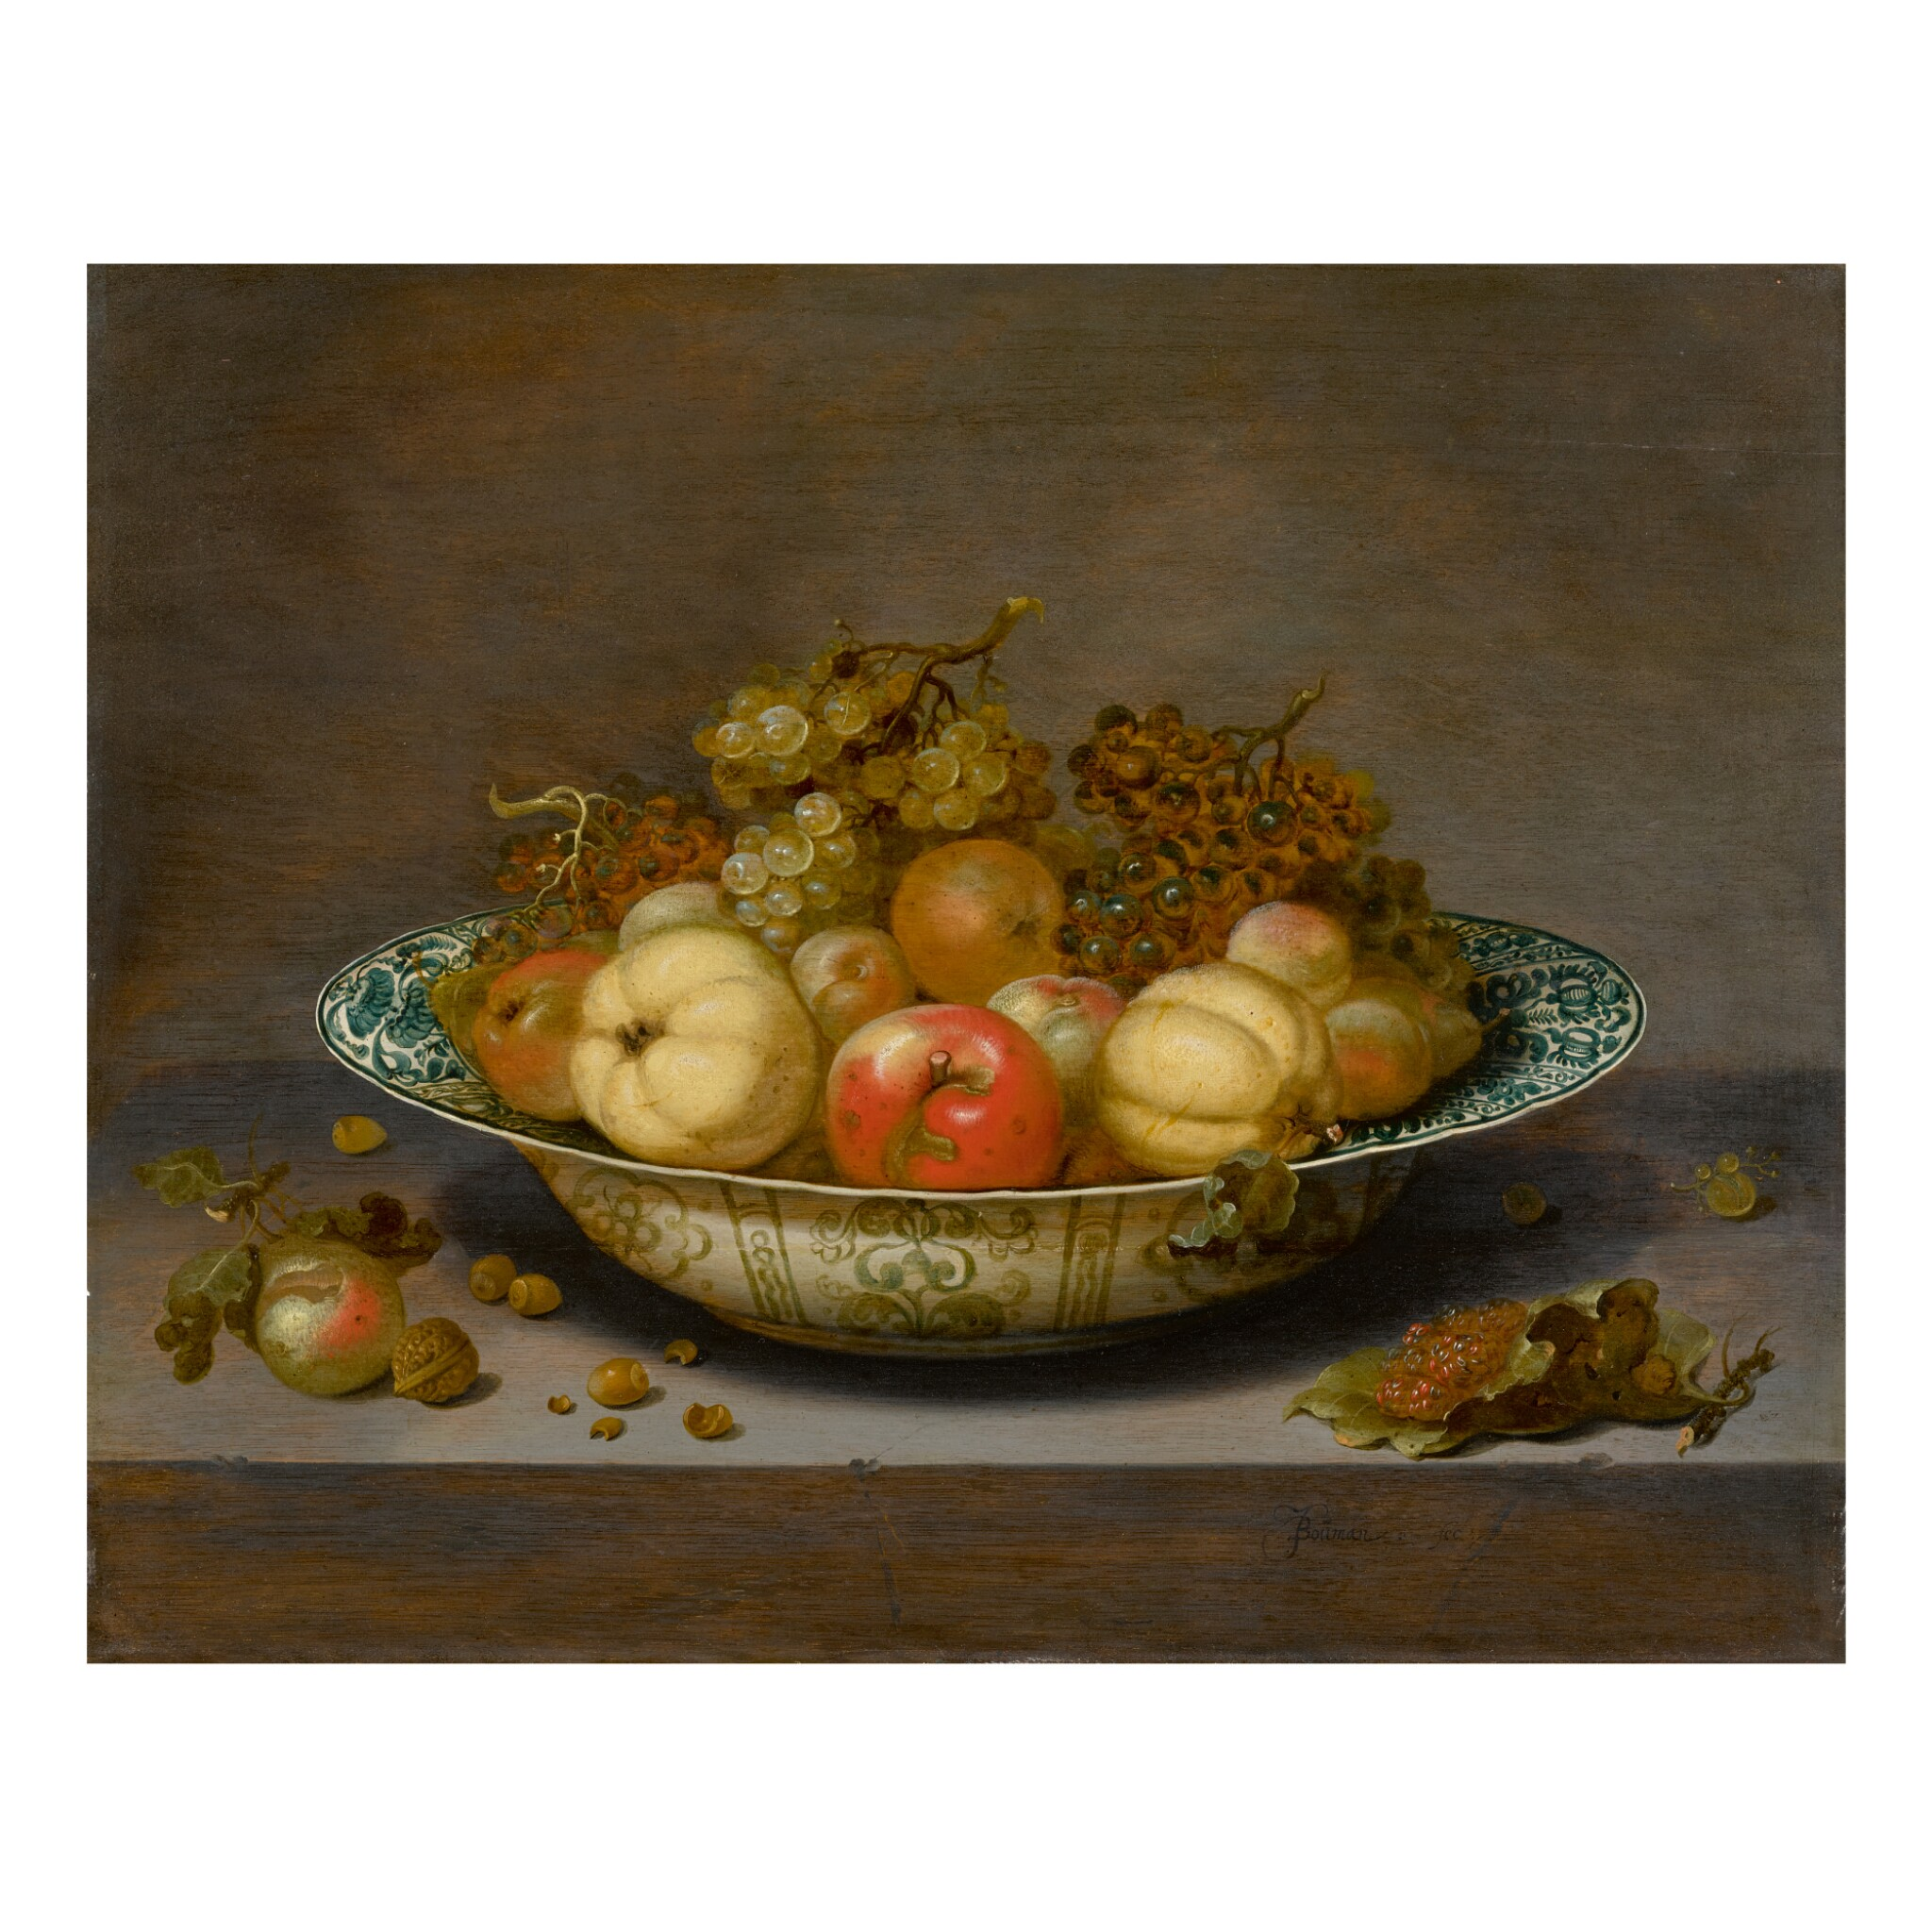 View full screen - View 1 of Lot 52. JOHANNES BOUMAN | STILL LIFE OF FRUIT IN A KRAAK BOWL, ON A LEDGE   .